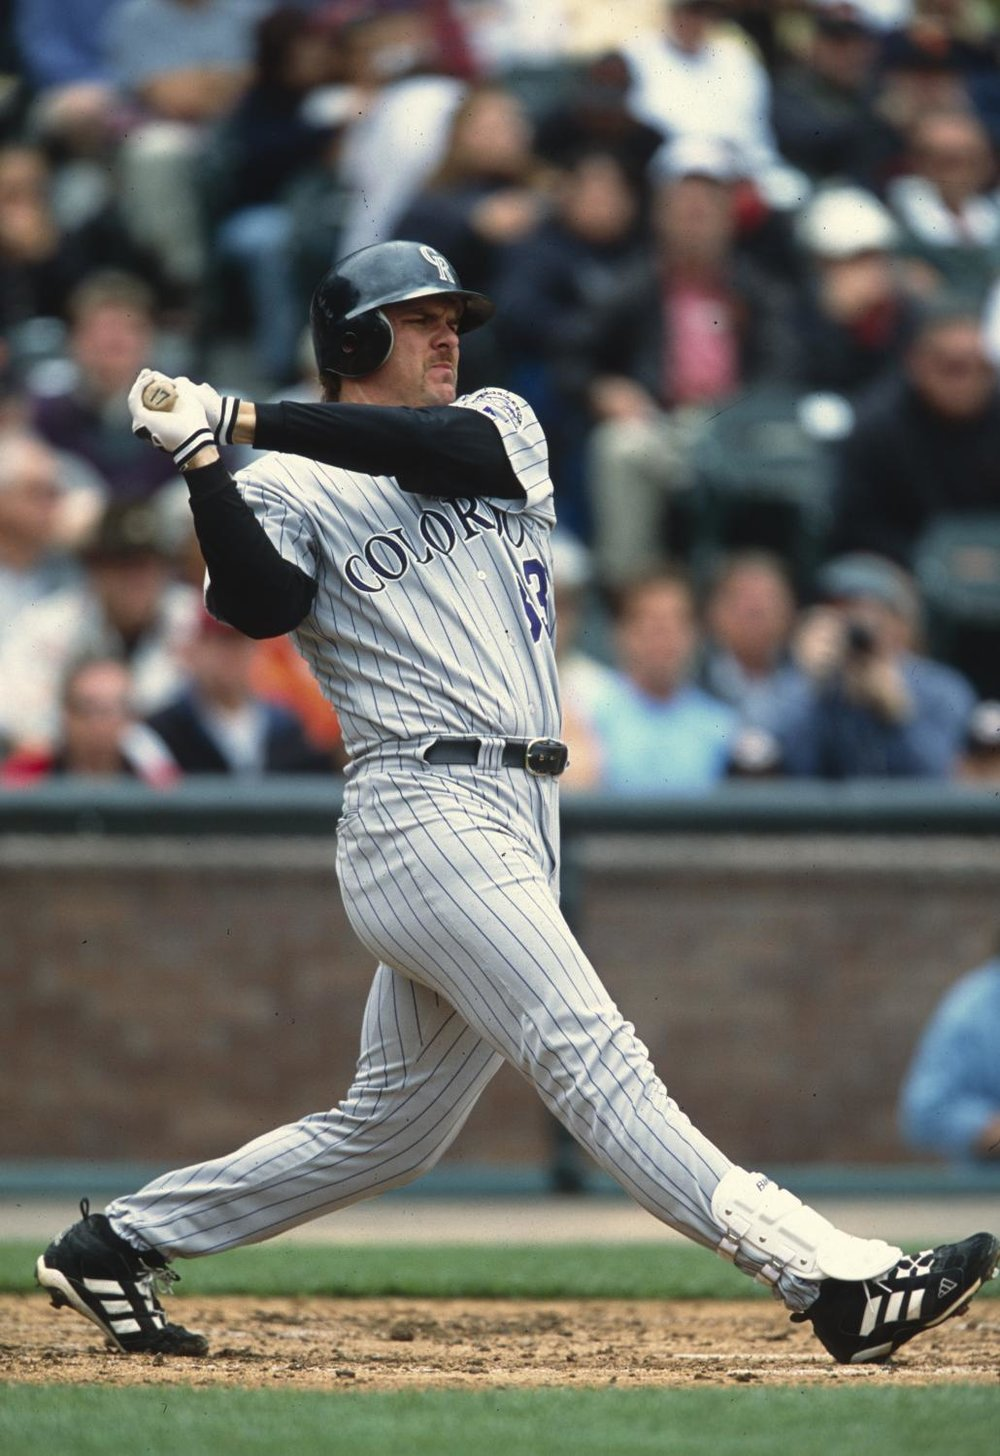 Maple Ridge, B.C., native Larry Walker is worthy of a plaque in Cooperstown. Photo Credit: National Baseball Hall of Fame Library